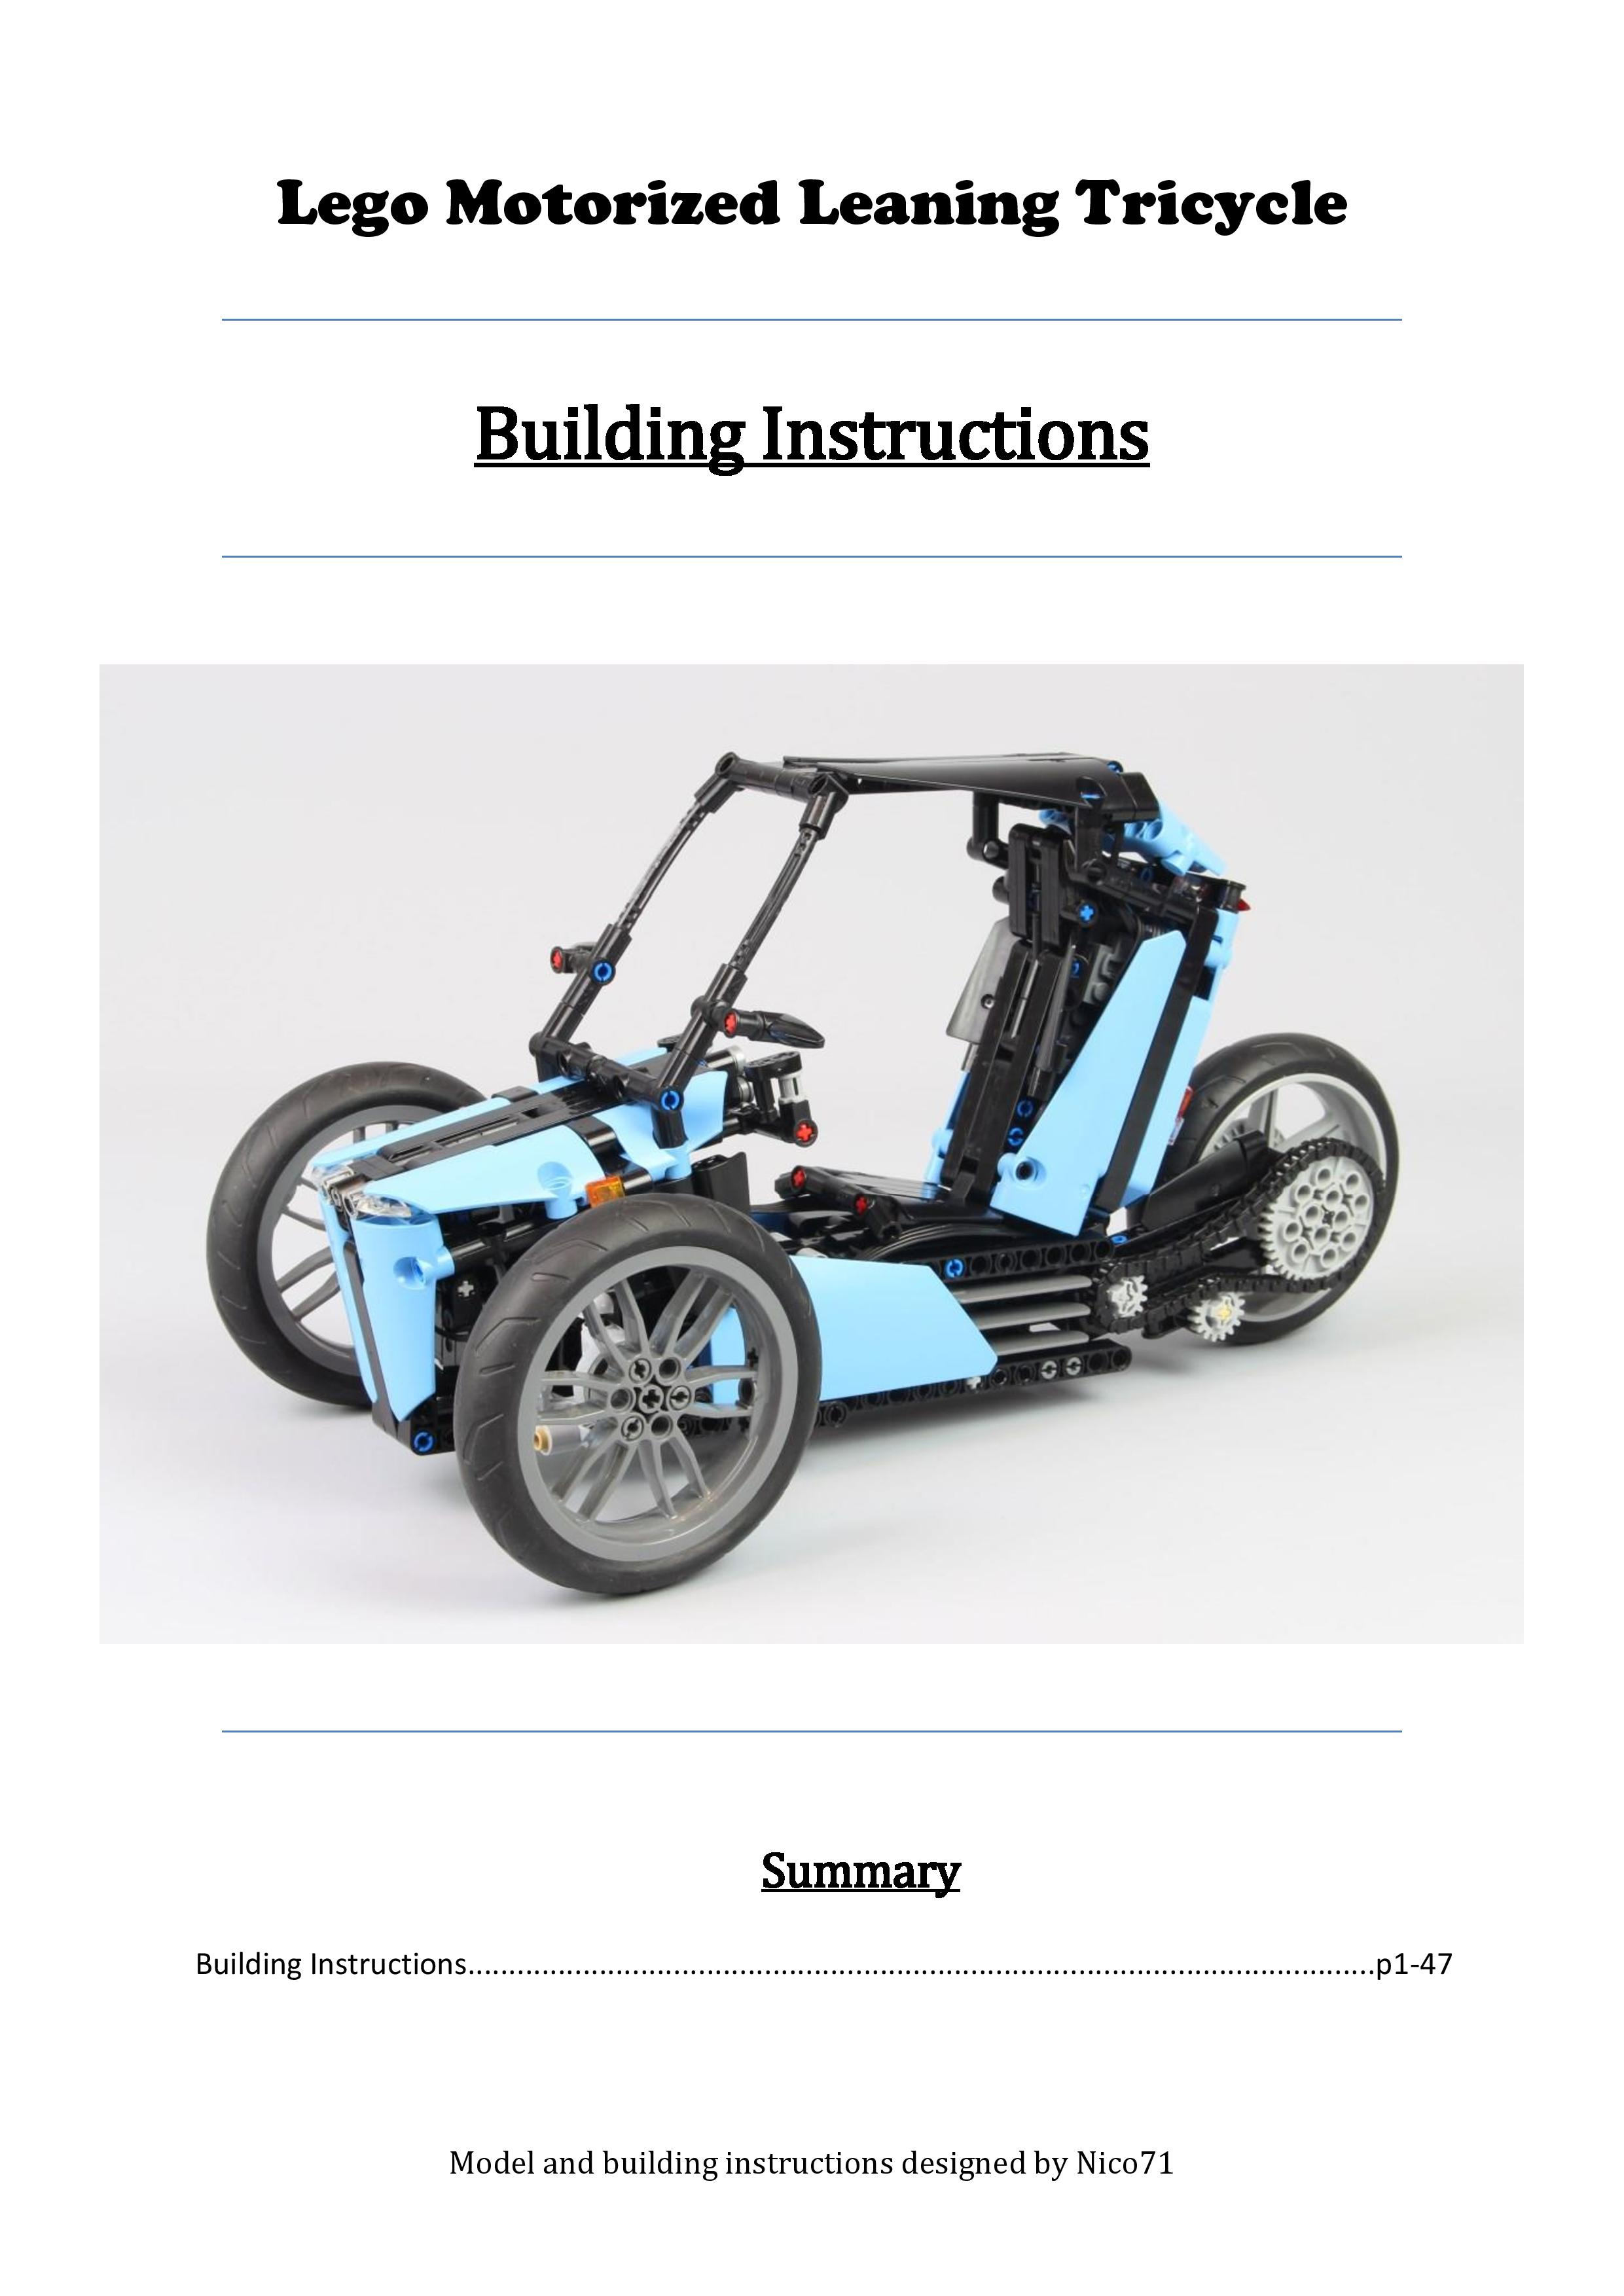 nico71Leaningtricycleinstructions-page-001